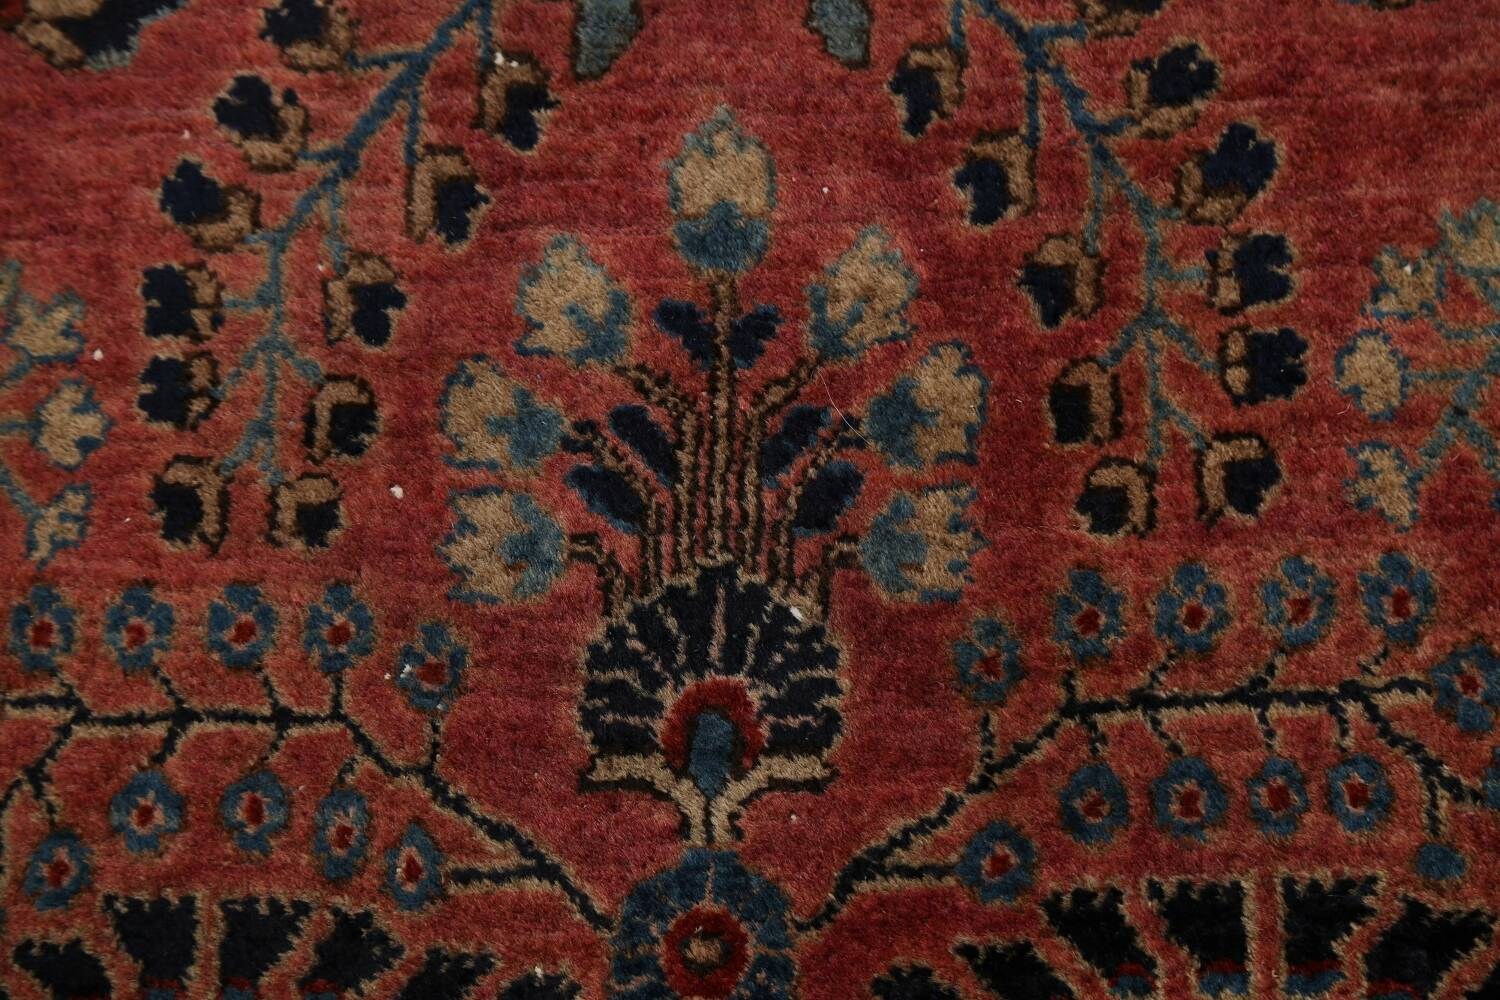 Antique Vegetable Dye Floral Sarouk Persian Area Rug 4x7 image 8